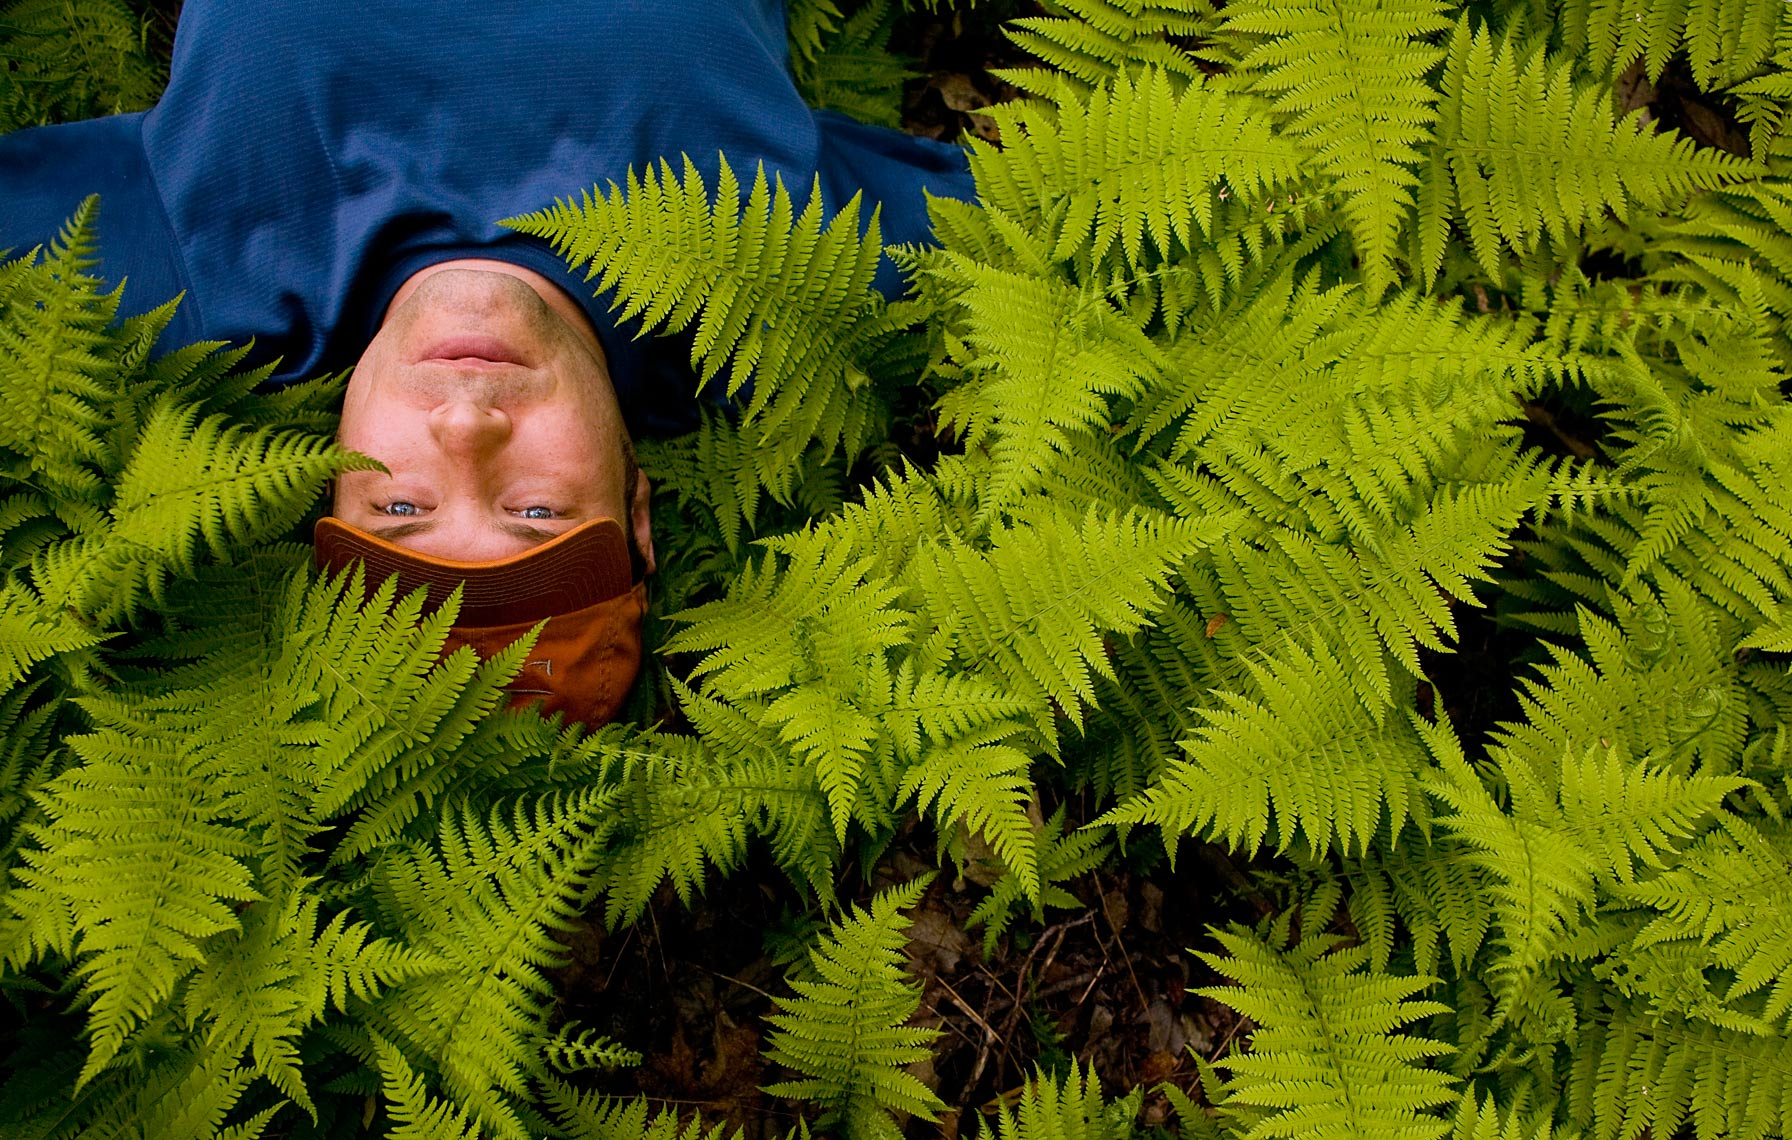 Man in Ferns Portrait